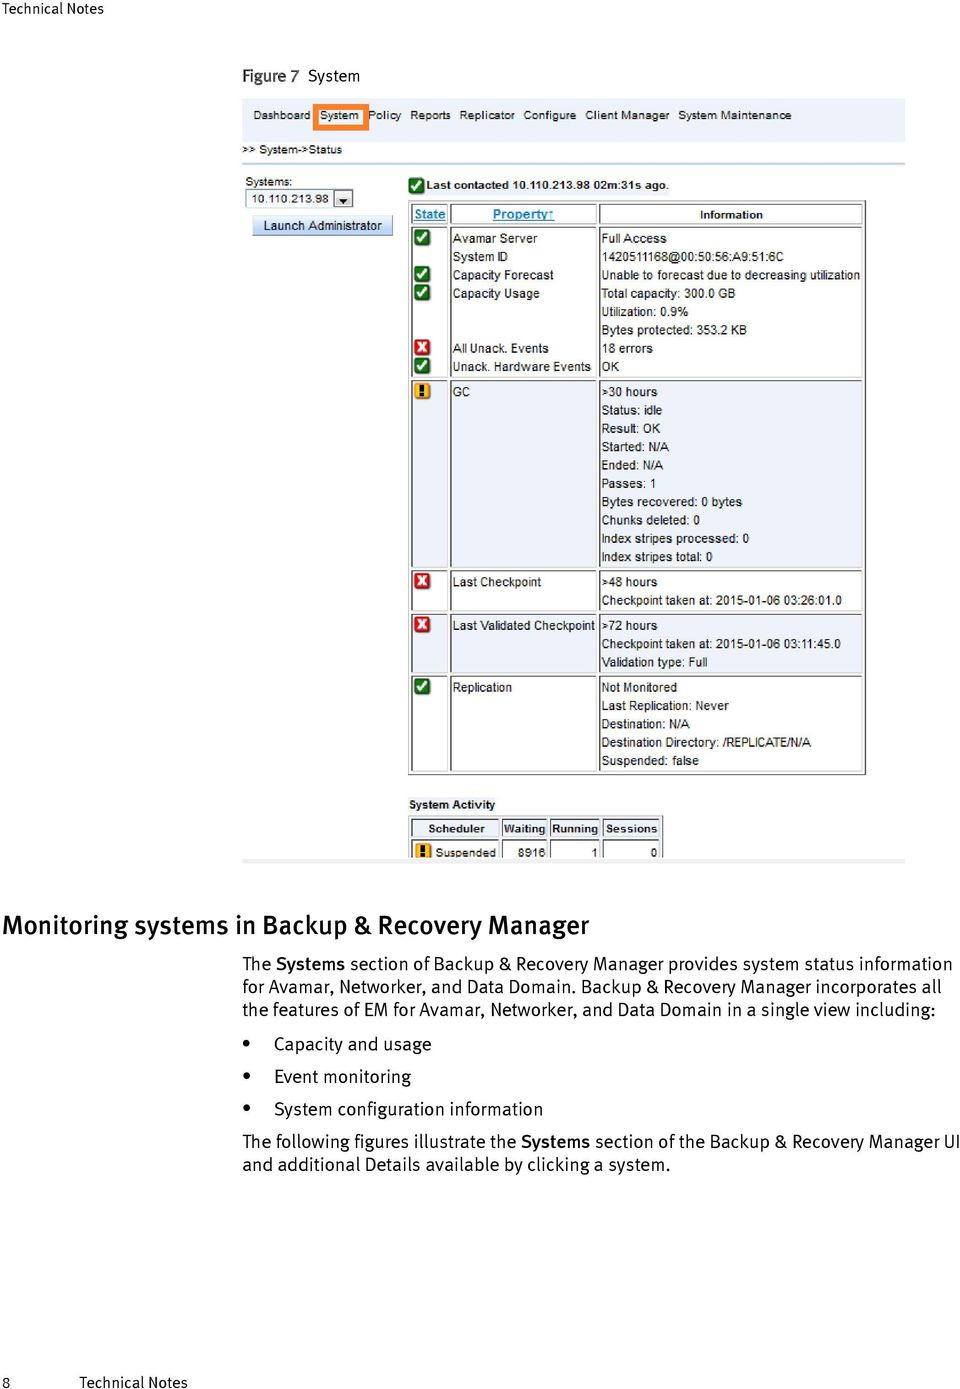 Backup & Recovery Manager incorporates all the features of EM for Avamar,  Networker, and